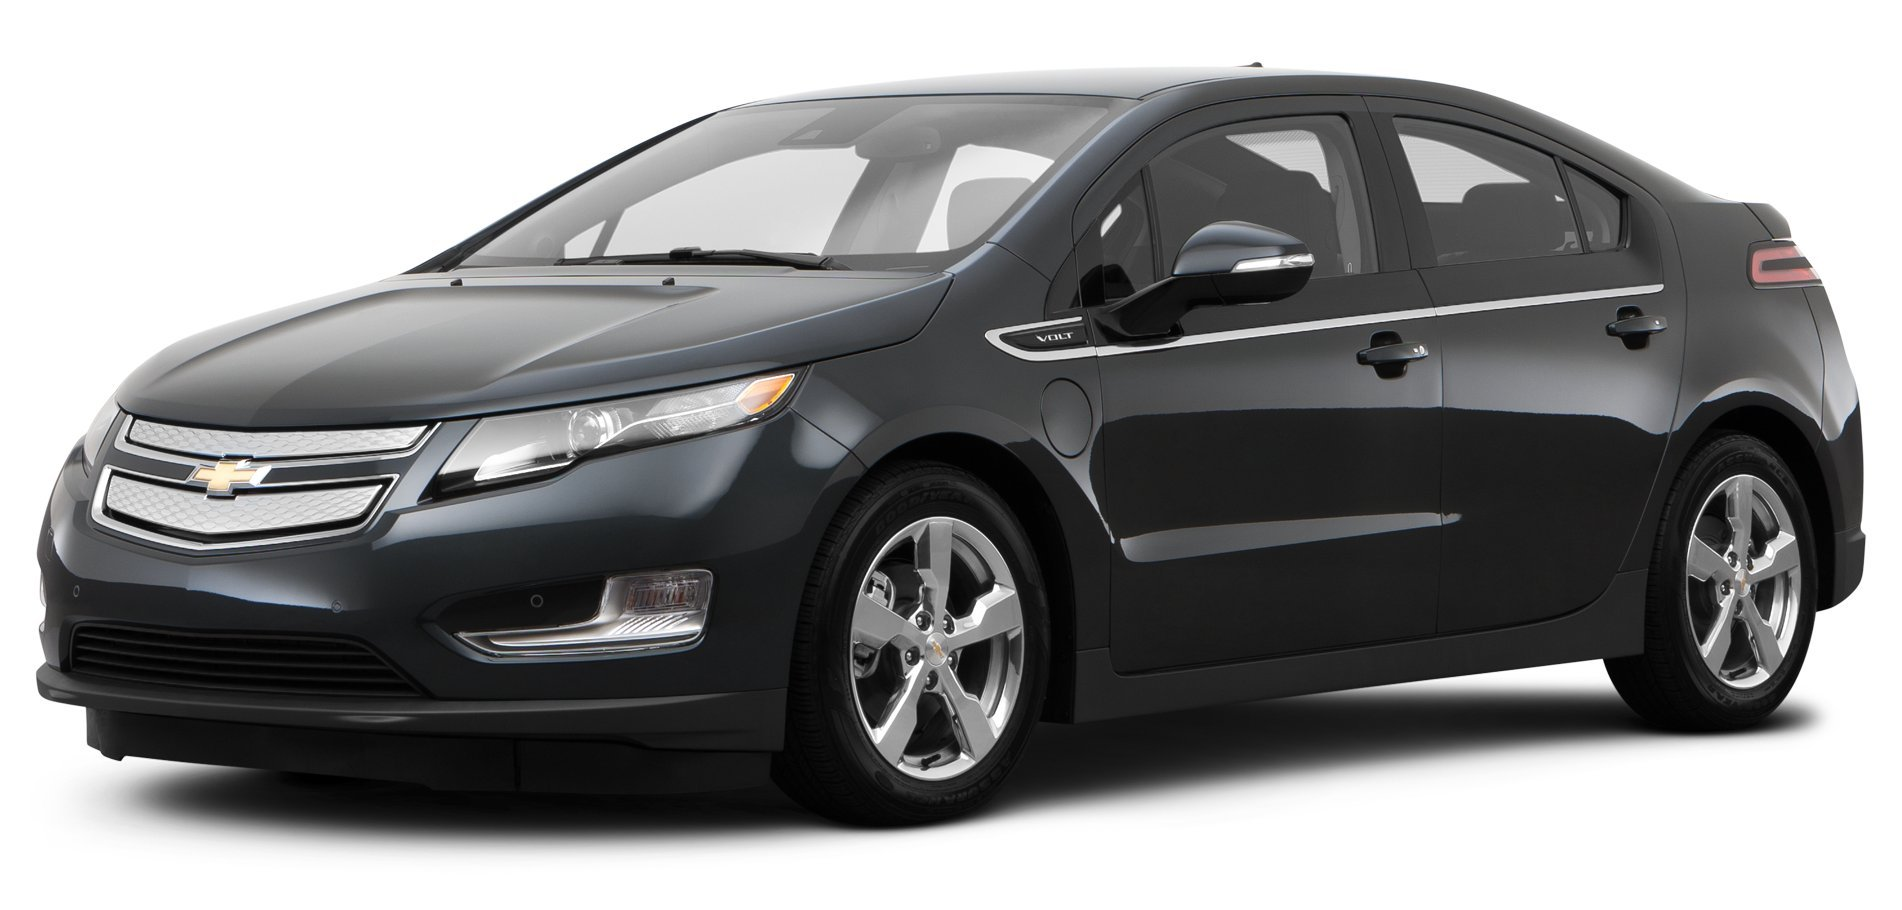 2014 chevrolet volt 5 door hatchback